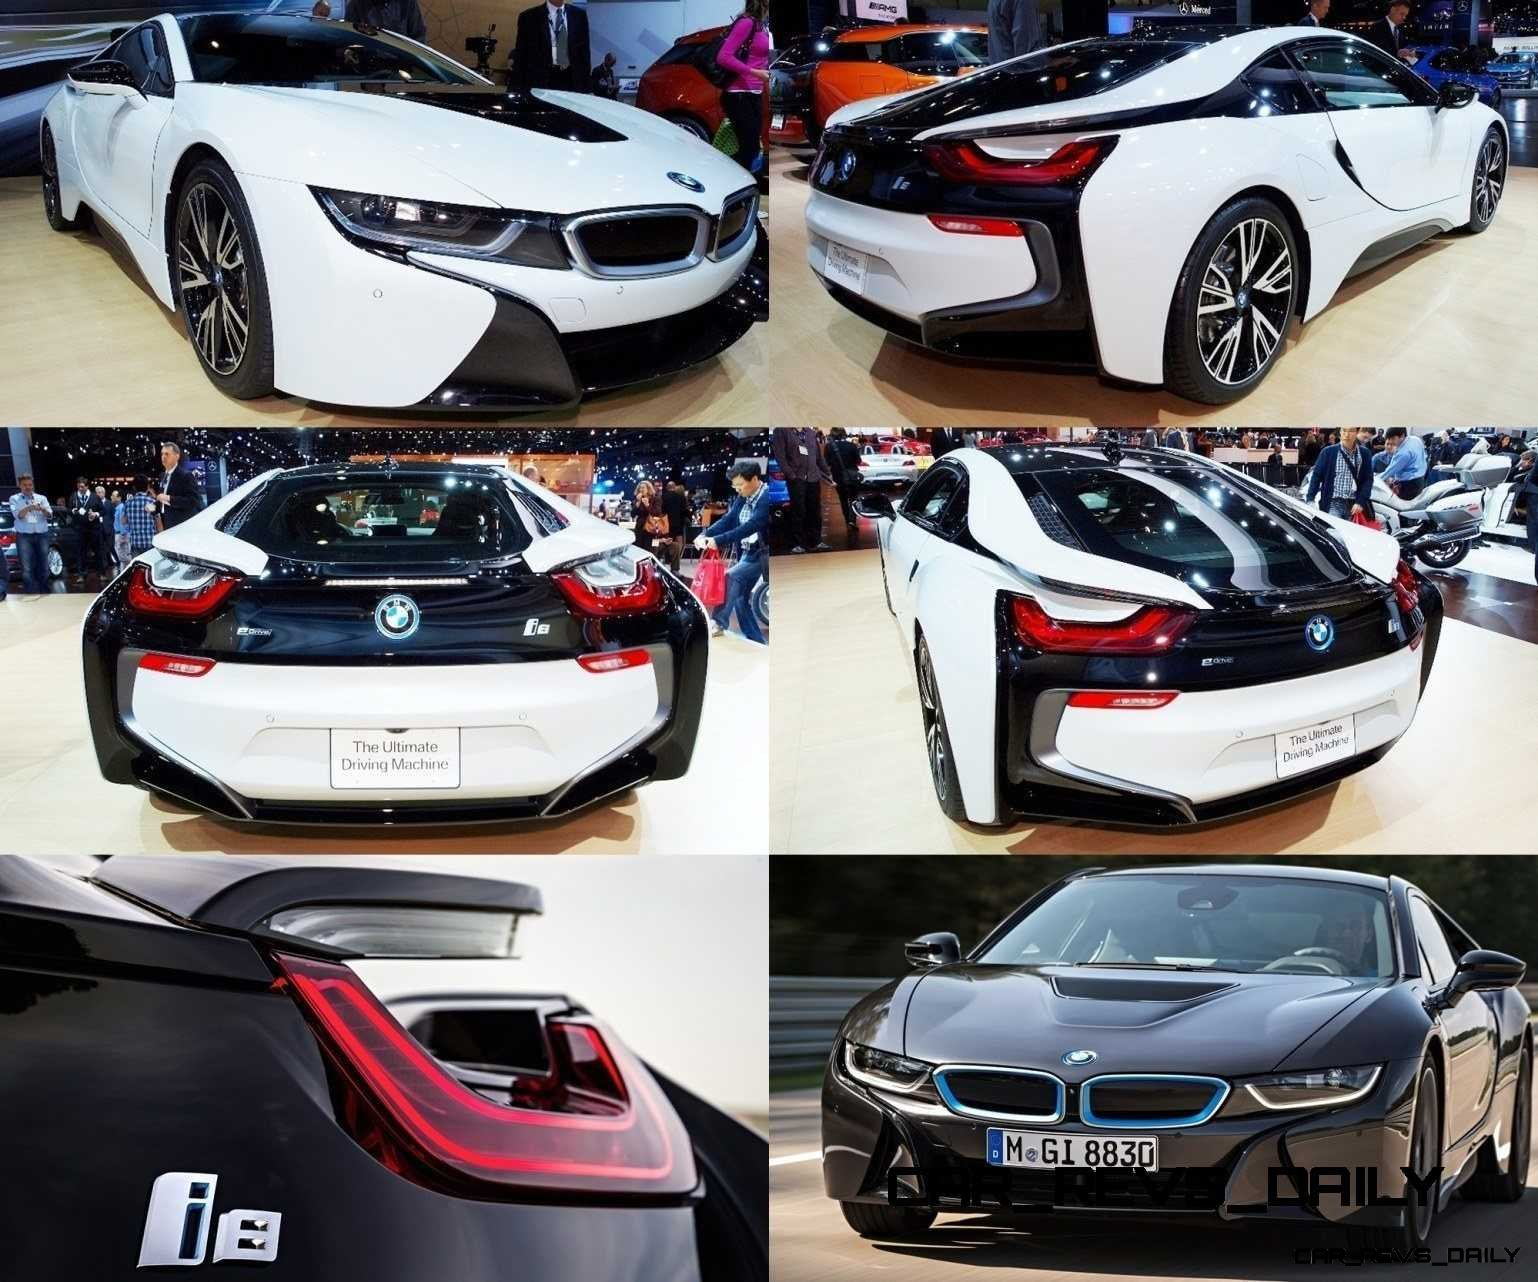 CarRevsDaily - BMW i8 Tiled Collage